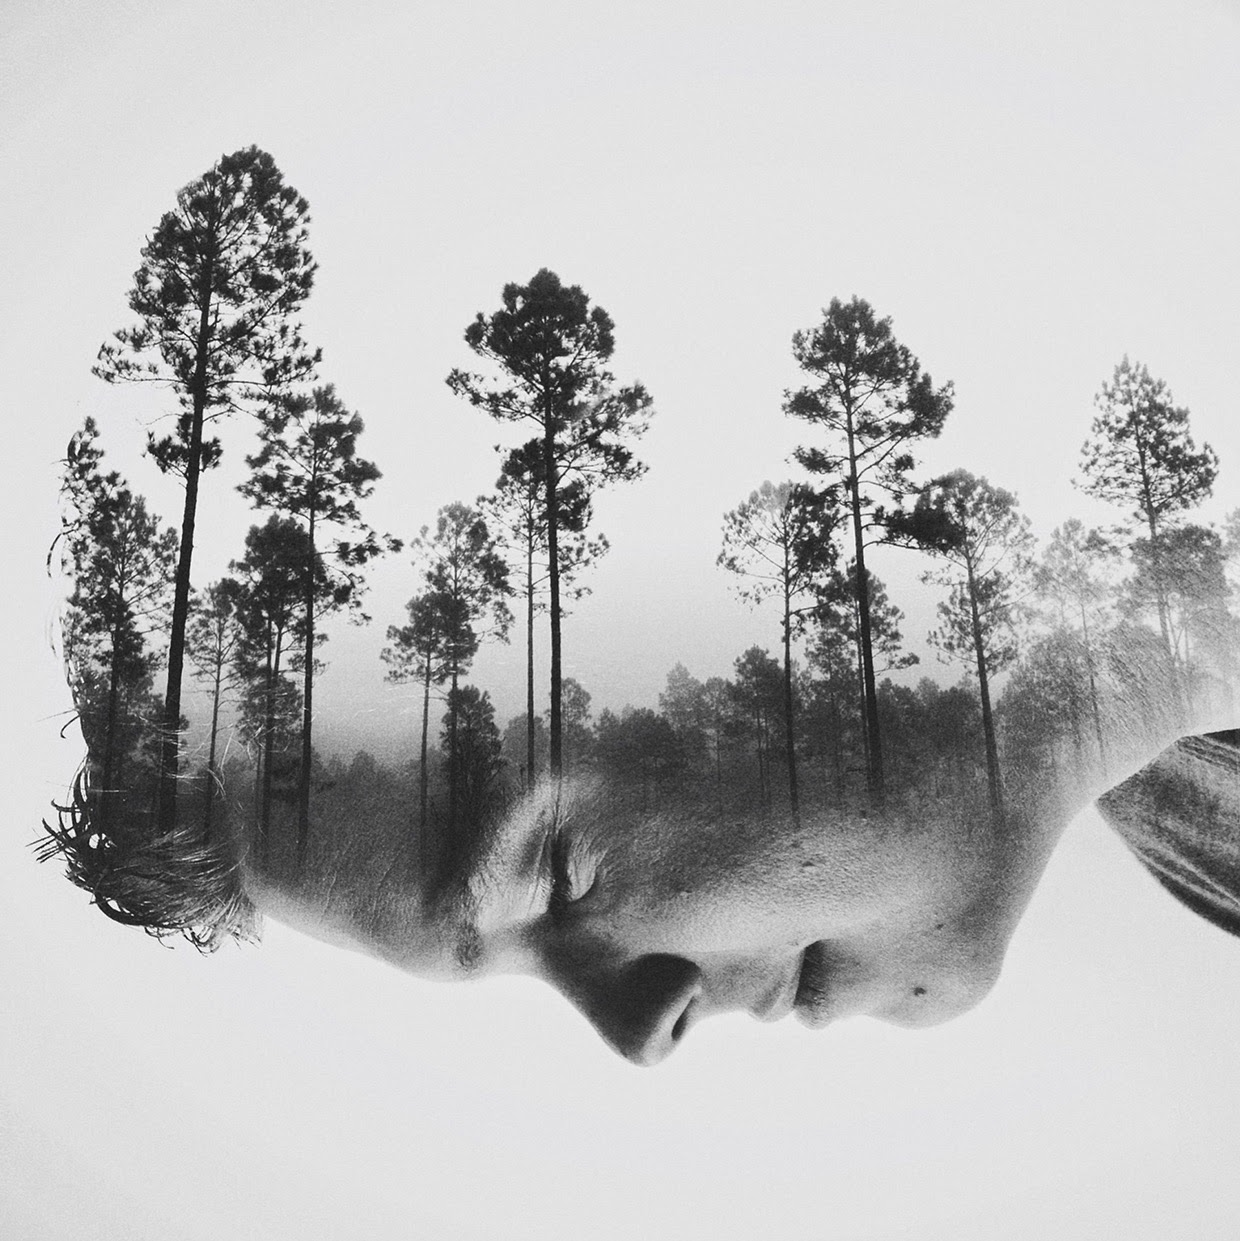 10-Brandon-Kidwell-Stories-in-Double-Exposure-Portrait-Photographs-www-designstack-co